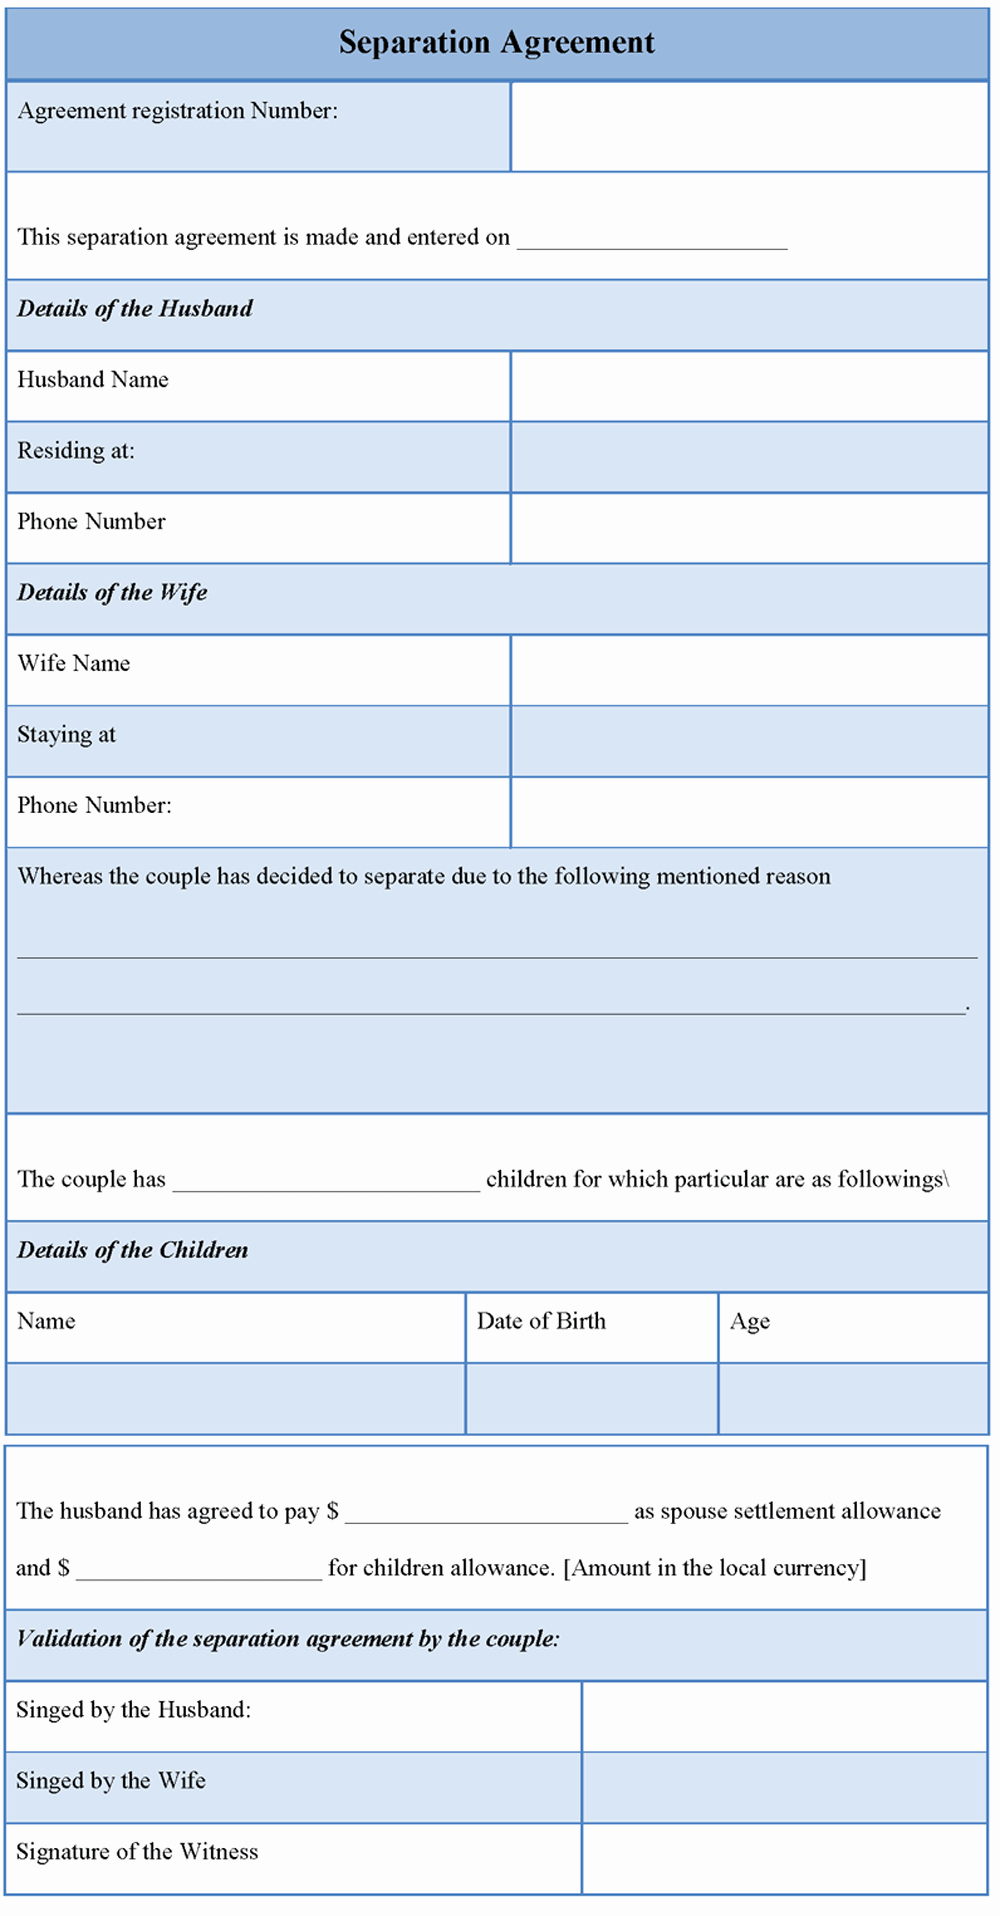 Template for Separation Agreement Beautiful Separation Agreement Template